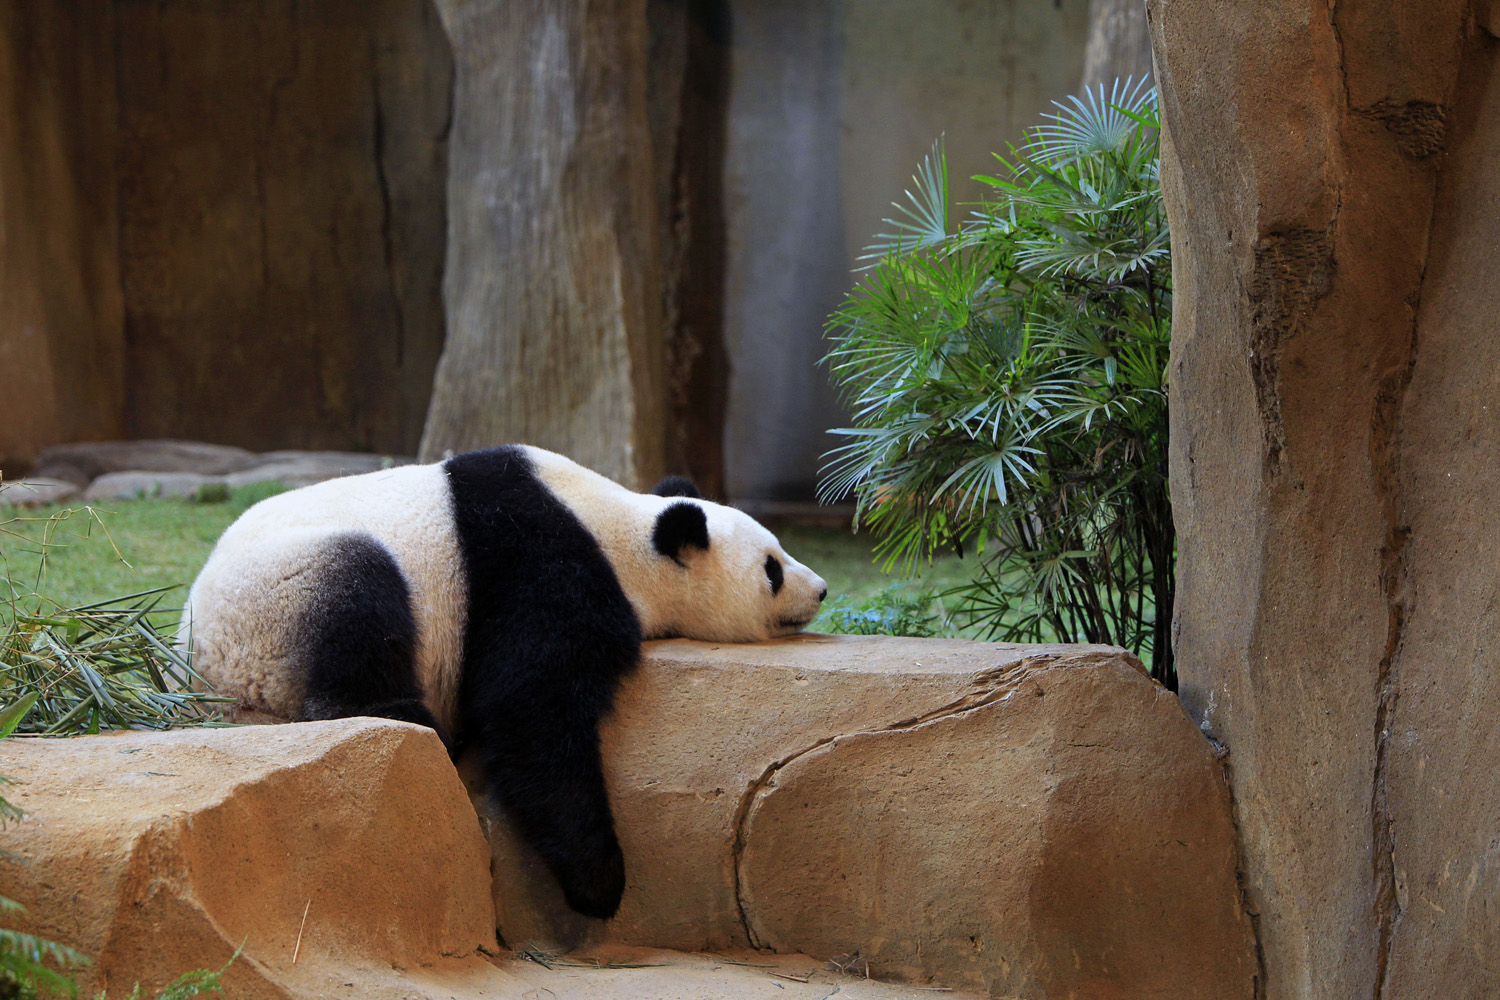 Liang Liang, formerly known as Feng Yi, one of two giant pandas from China, sleeps at the Giant Panda Conservation Center at the National Zoo in Kuala Lumpur, Malaysia on June 28, 2014.